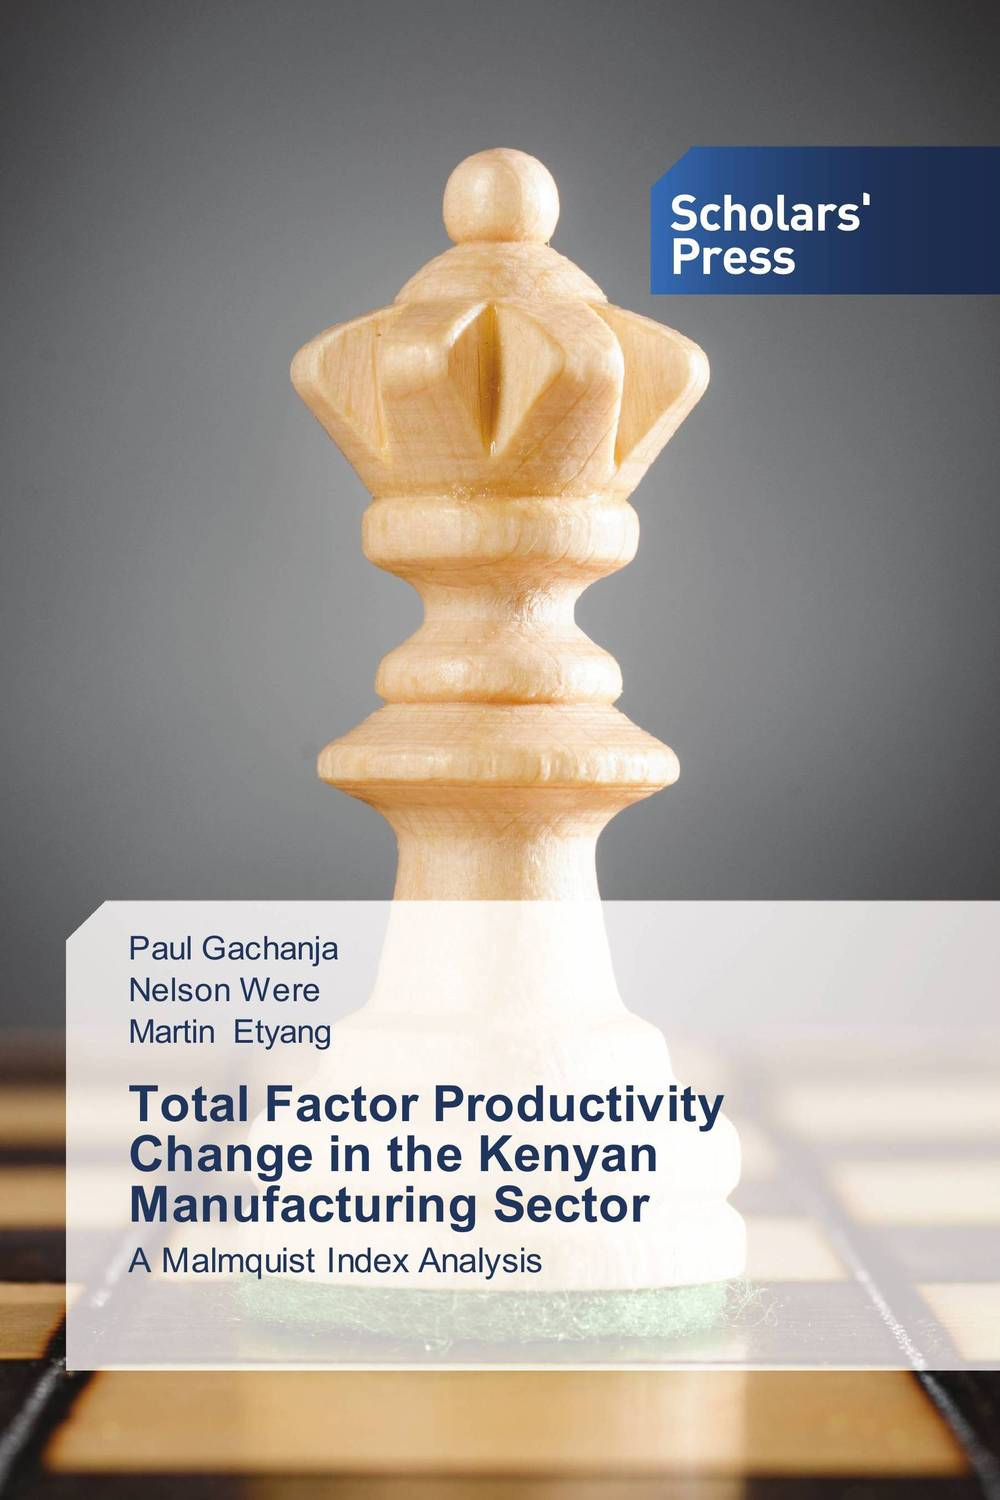 купить Total Factor Productivity Change in the Kenyan Manufacturing Sector онлайн